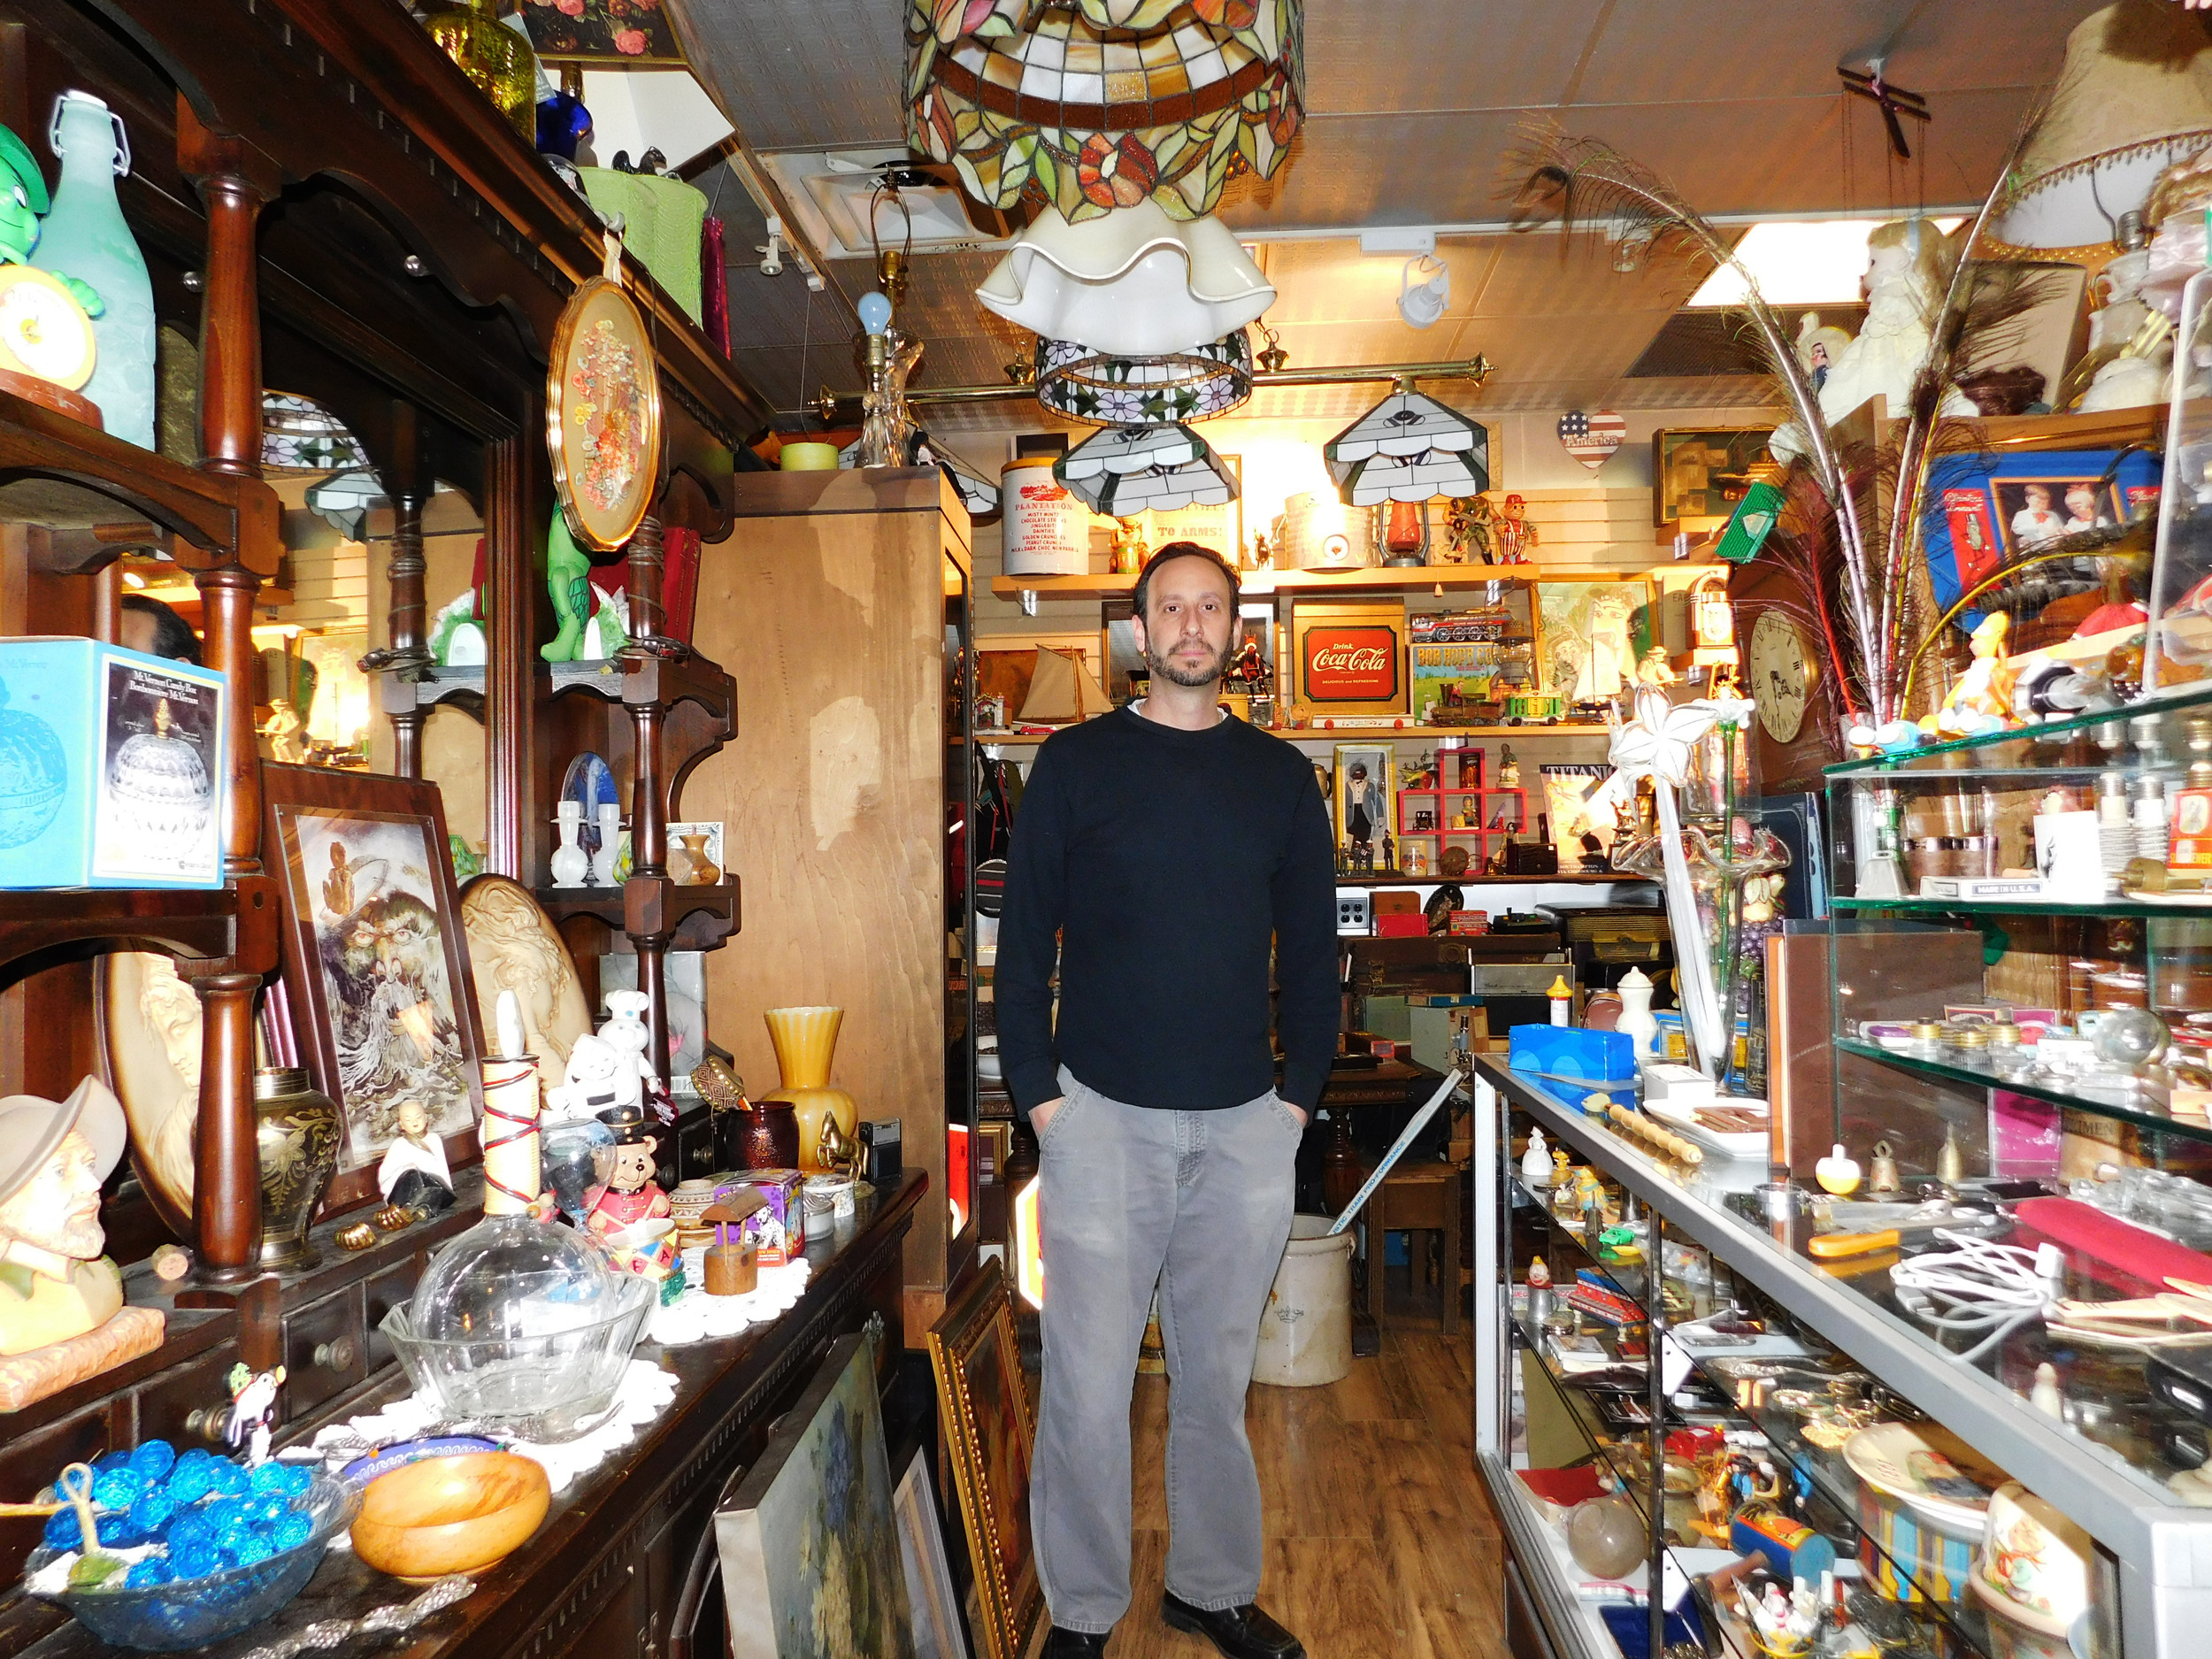 Tuzzolo took the Herald on a brief tour of his thrift shop, which doubles as a space to unload items when seniors downsize their living situations.